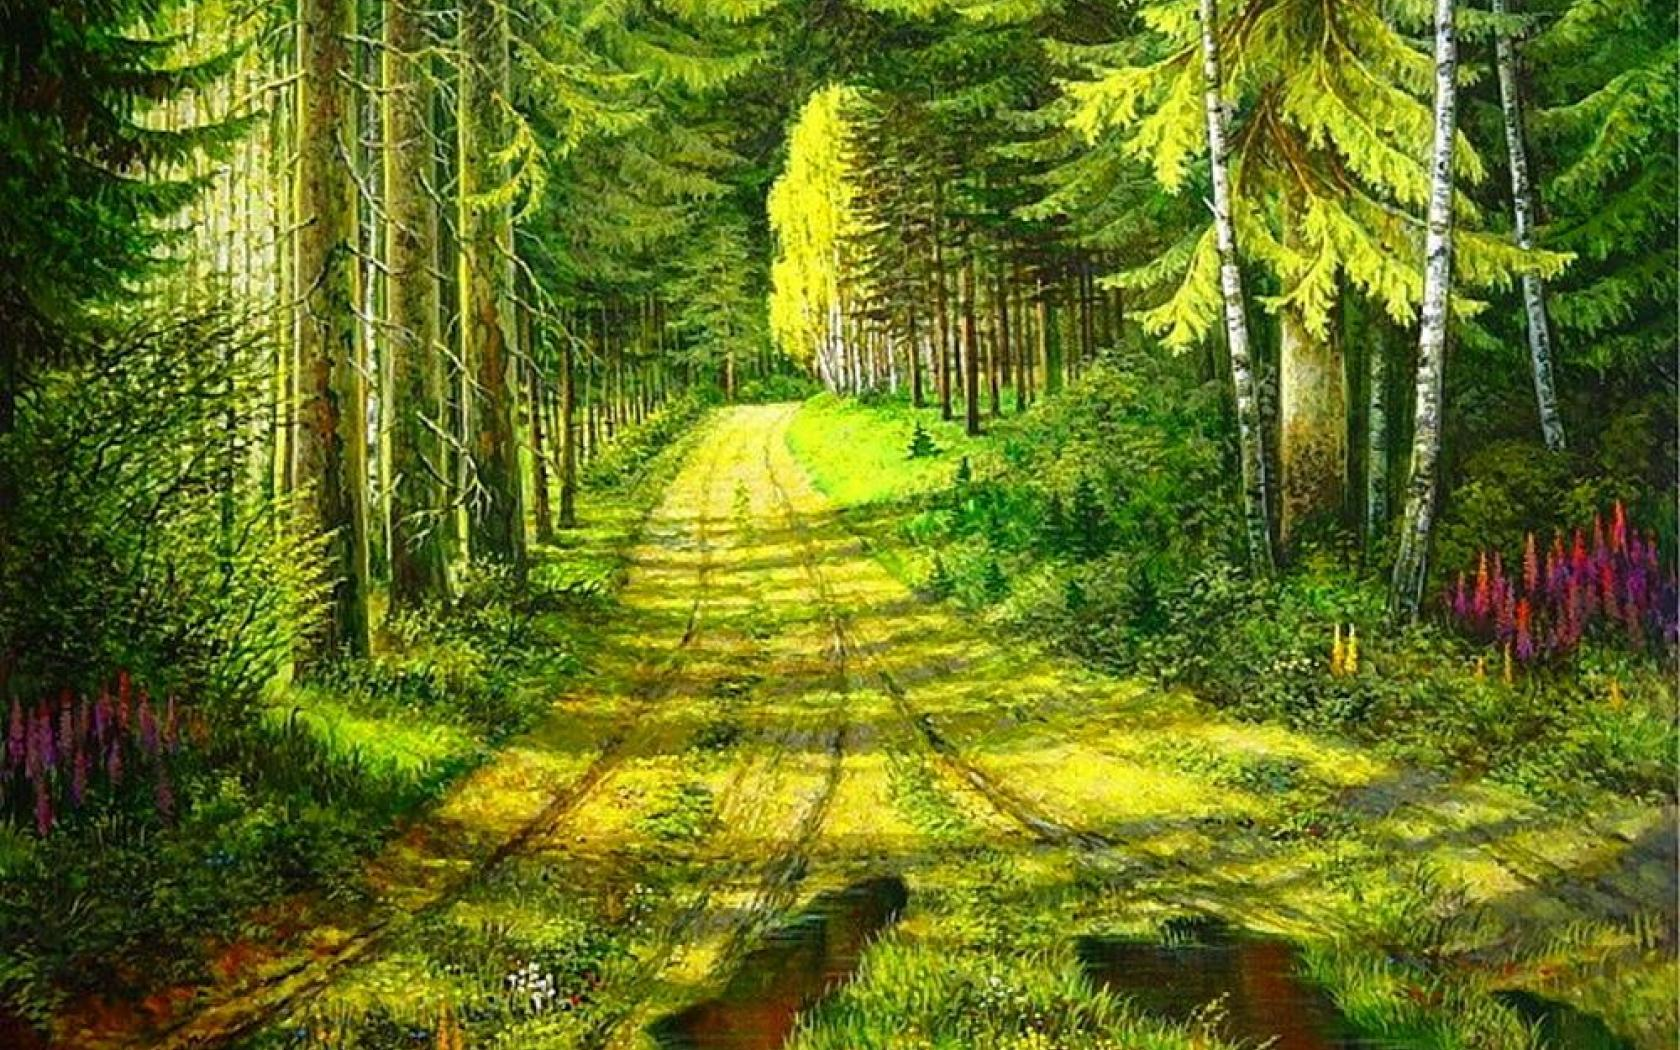 Wallpaper Tags: landscape lovely path nature beautiful green colors forest peaceful sun splendor wood